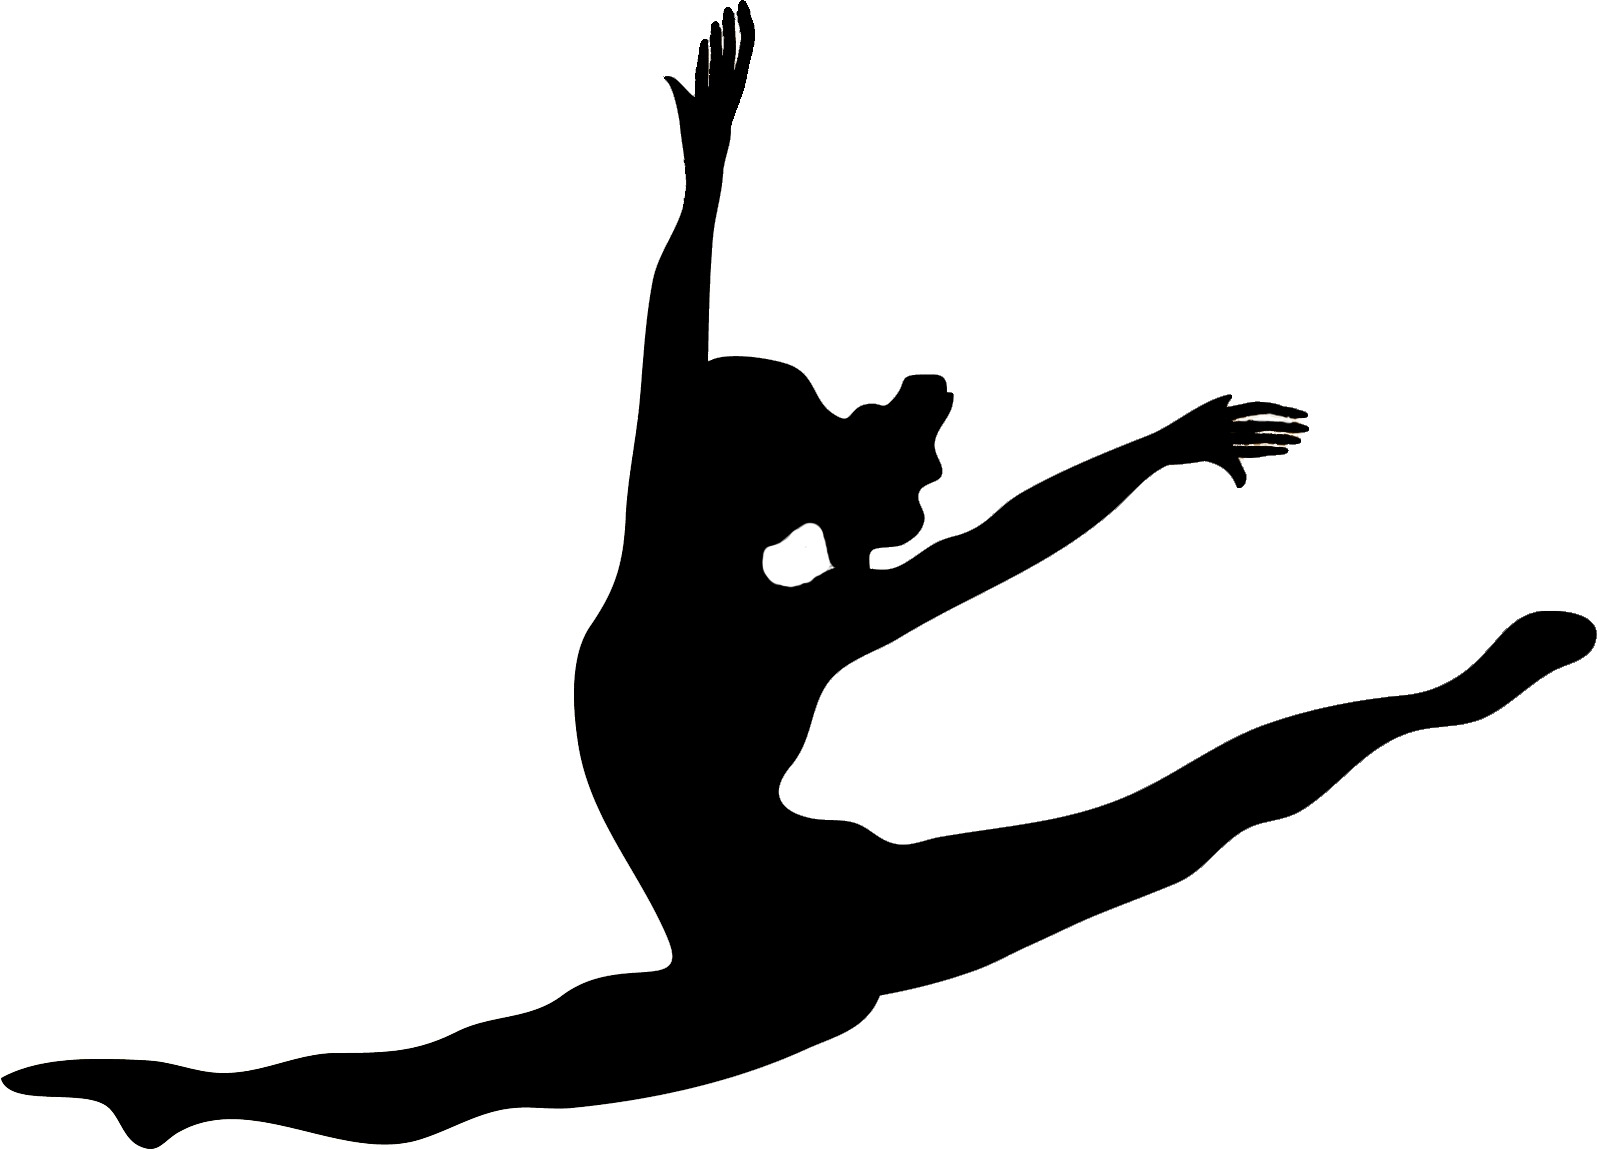 Dancing clipart lyrical dance. Free cliparts download clip